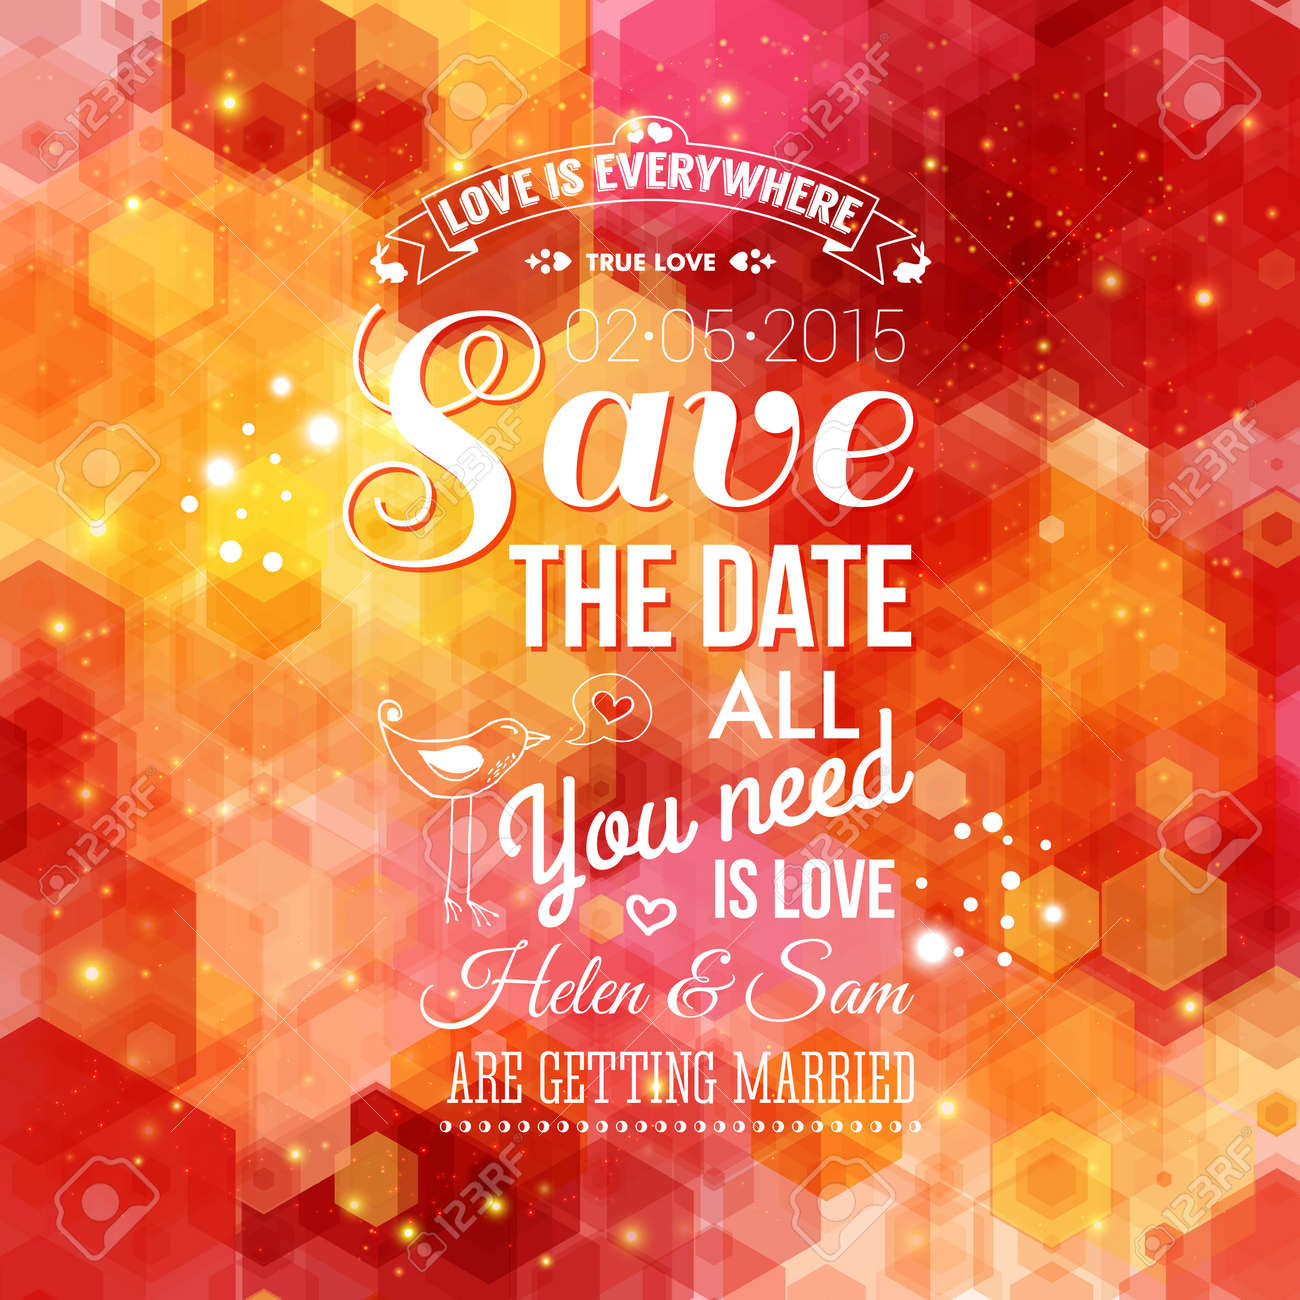 Save The Date For Personal Holiday. Wedding Invitation On A Bright ...